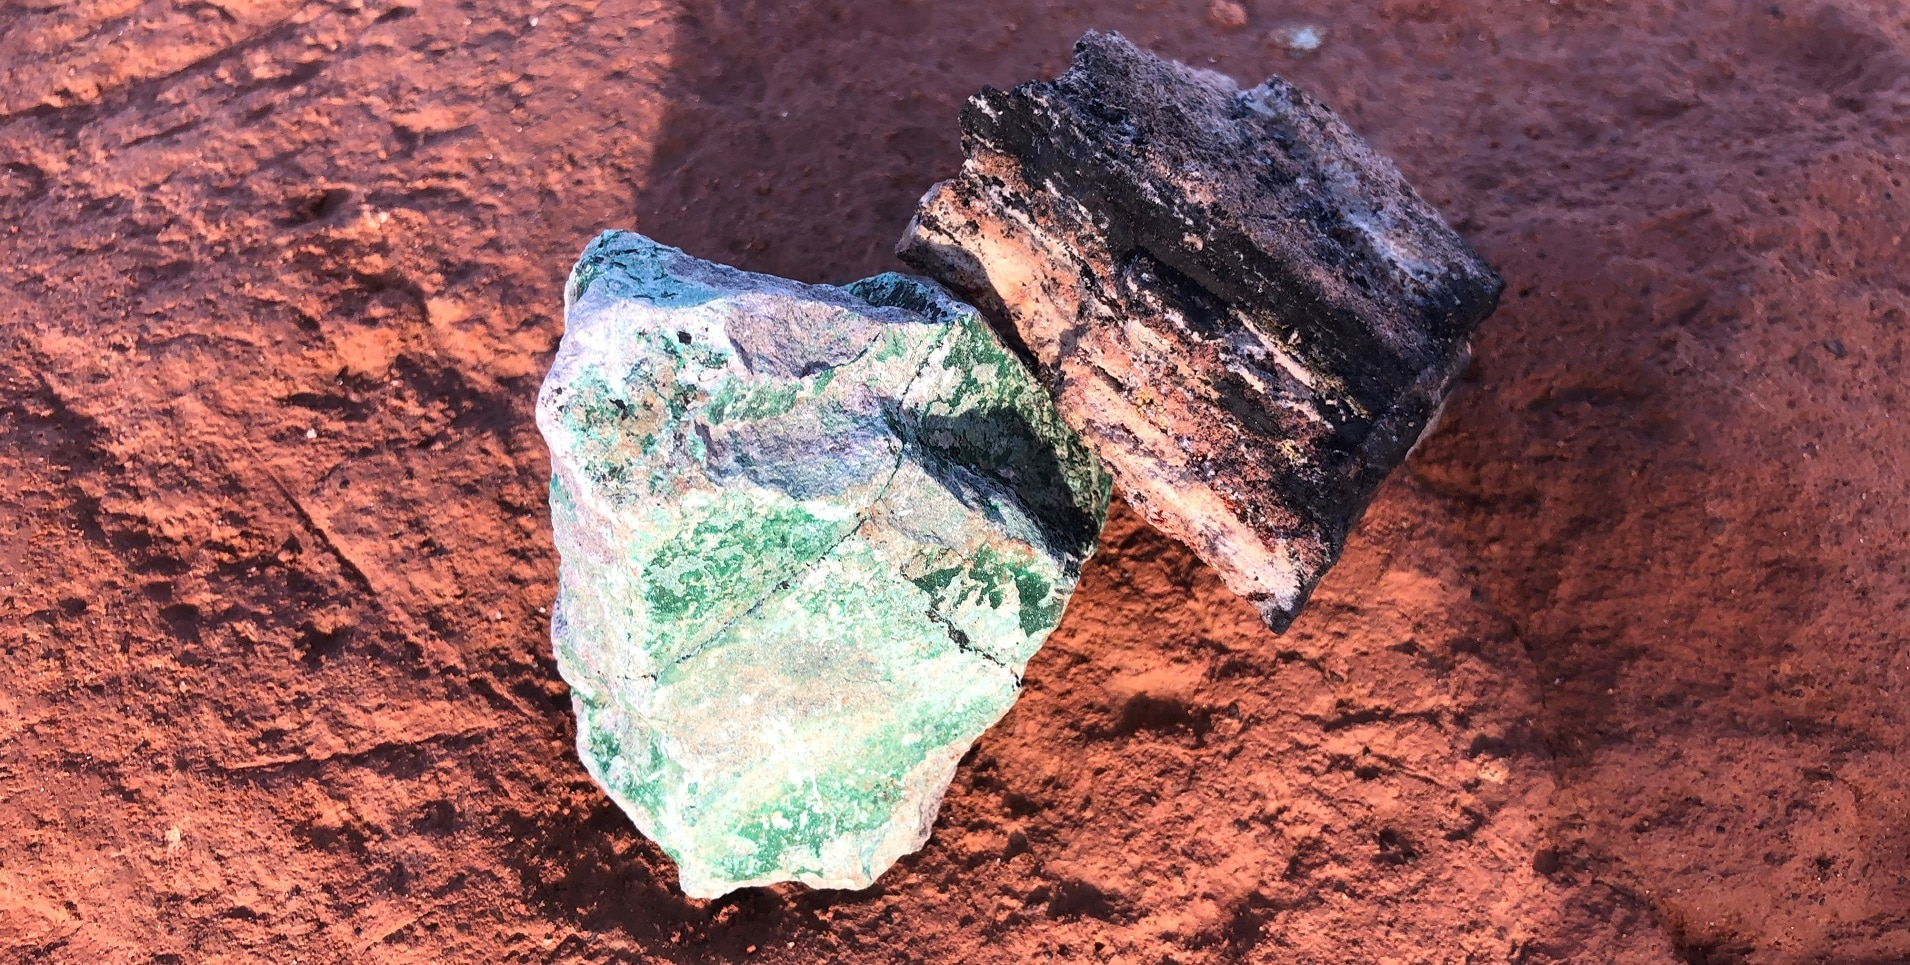 A black piece of cobalt and a green piece of copper placed on the ochre soil to symbolise the mining industry in the Democratic Republic of the Congo's Copperbelt region.